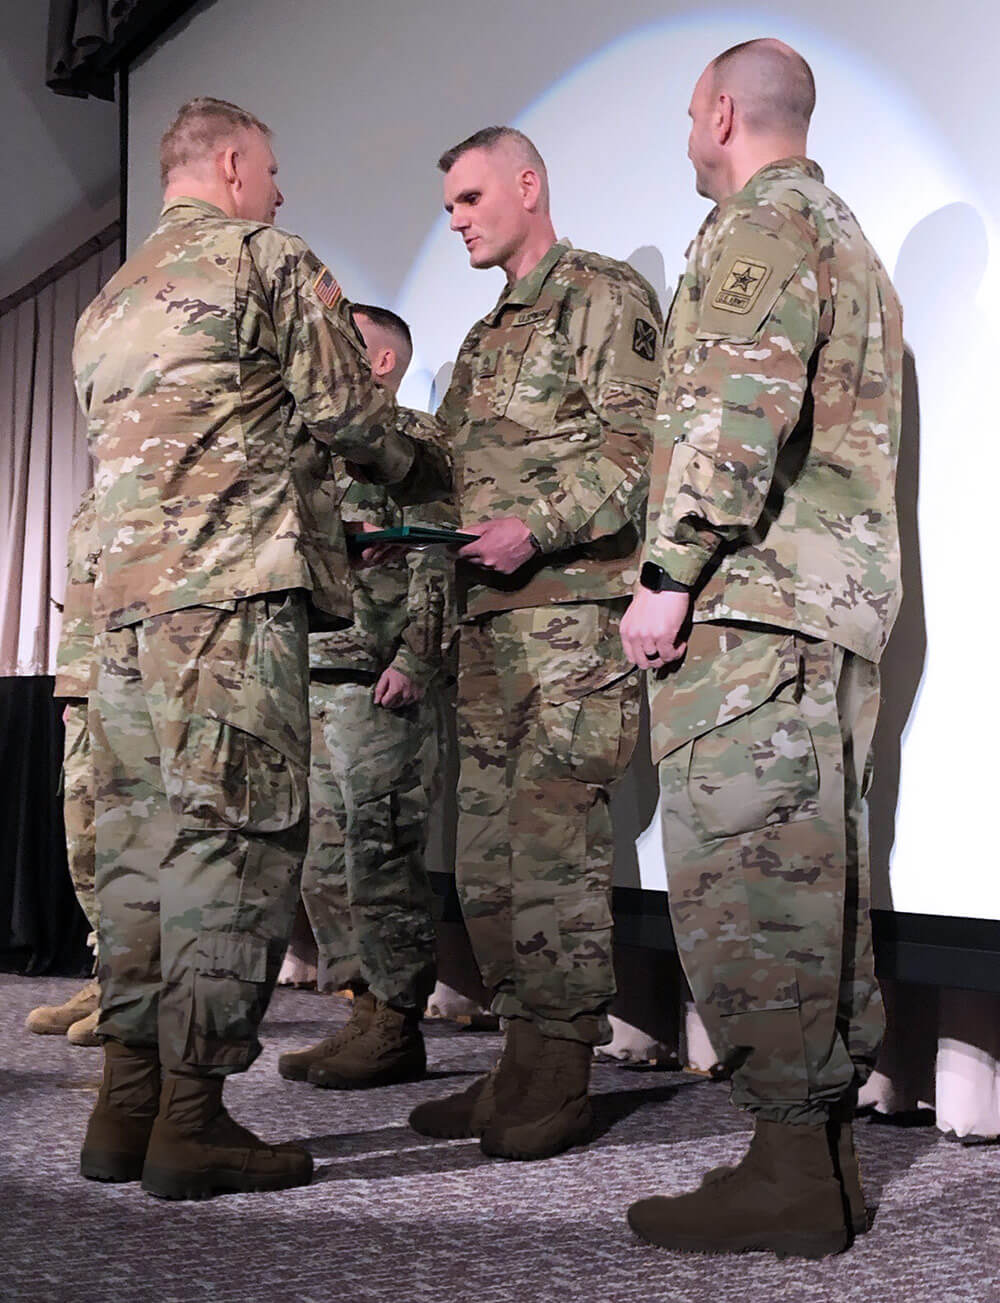 SSG Sergi Corduneanu, a crypto-linguist with Delta Company, 341st Military Intelligence Battalion, 300th Military Intelligence Brigade, Washington Army National Guard, is awarded a plaque during the brigade's annual language conference where he was selected as the 300th's language professional of the year. Photo courtesy Washington National Guard